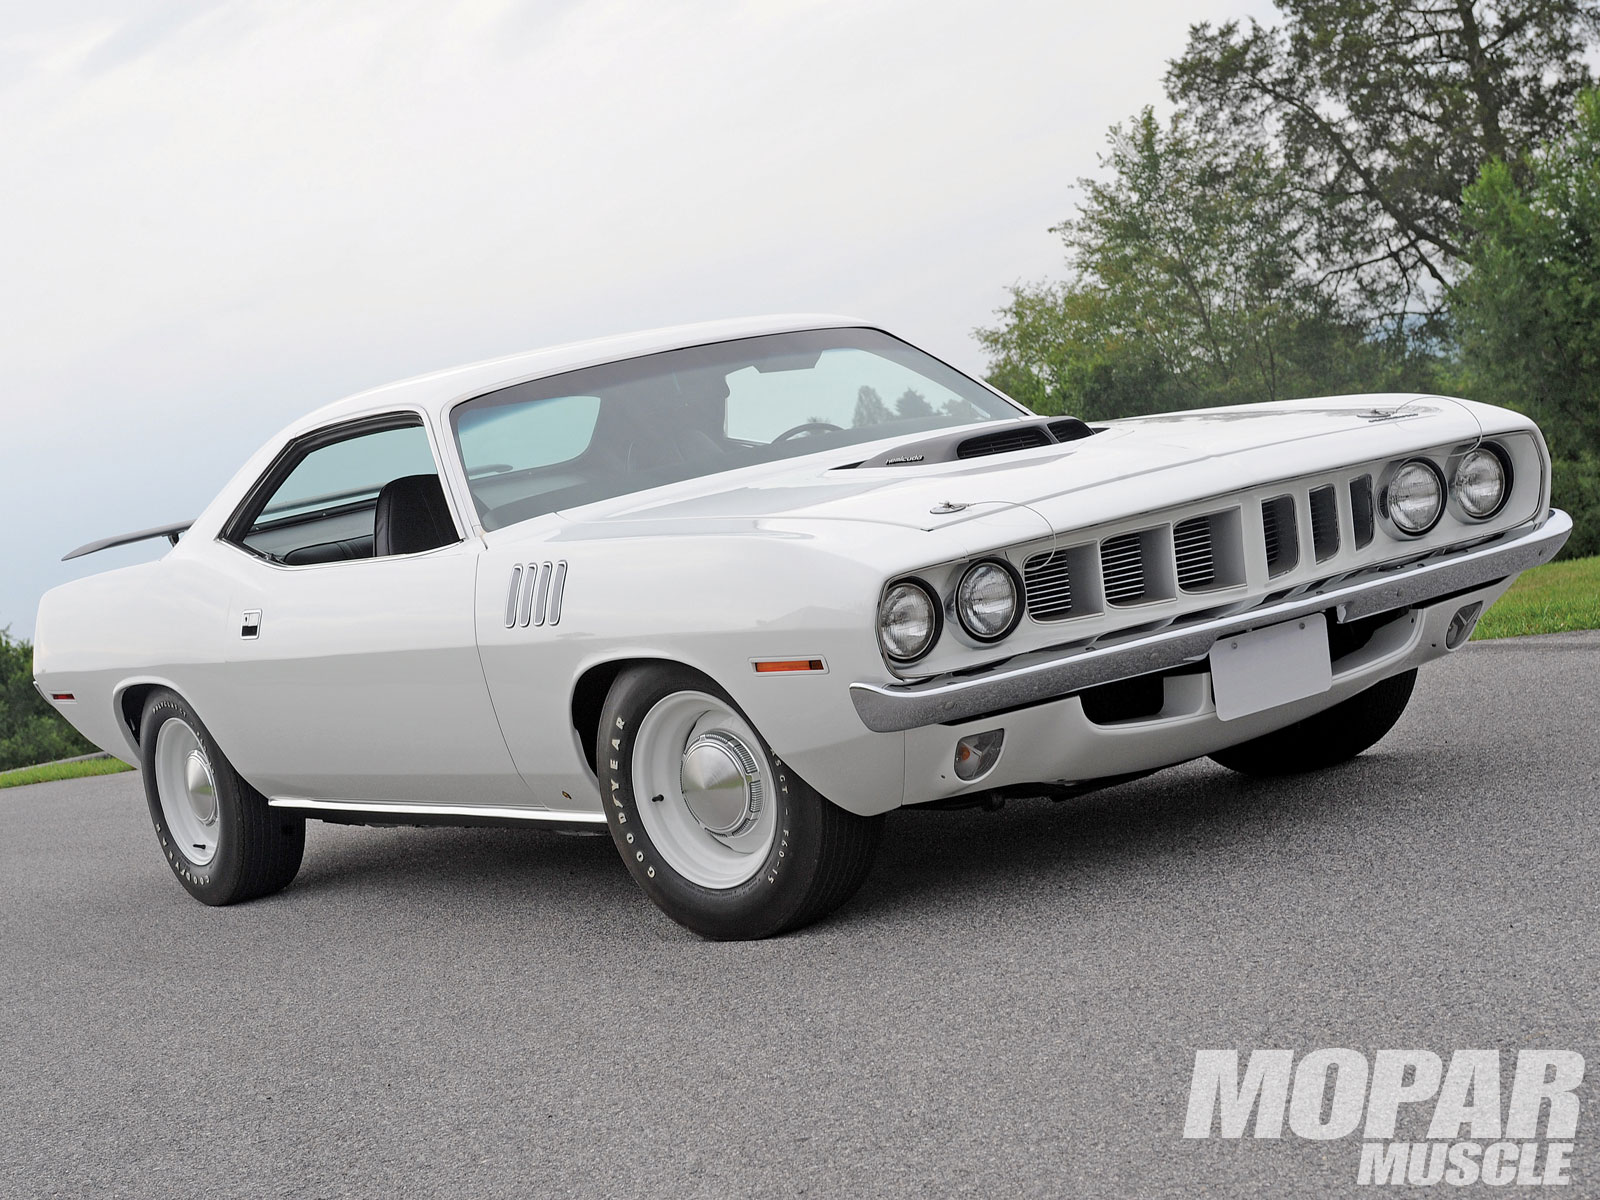 Watch furthermore 1971 Chrysler 300 Big Fat Luxury furthermore 67l Powerstroke Engine additionally 1969 Fiat 500 Wiring Diagram additionally Inventory printer flriendly. on ford 440 engine